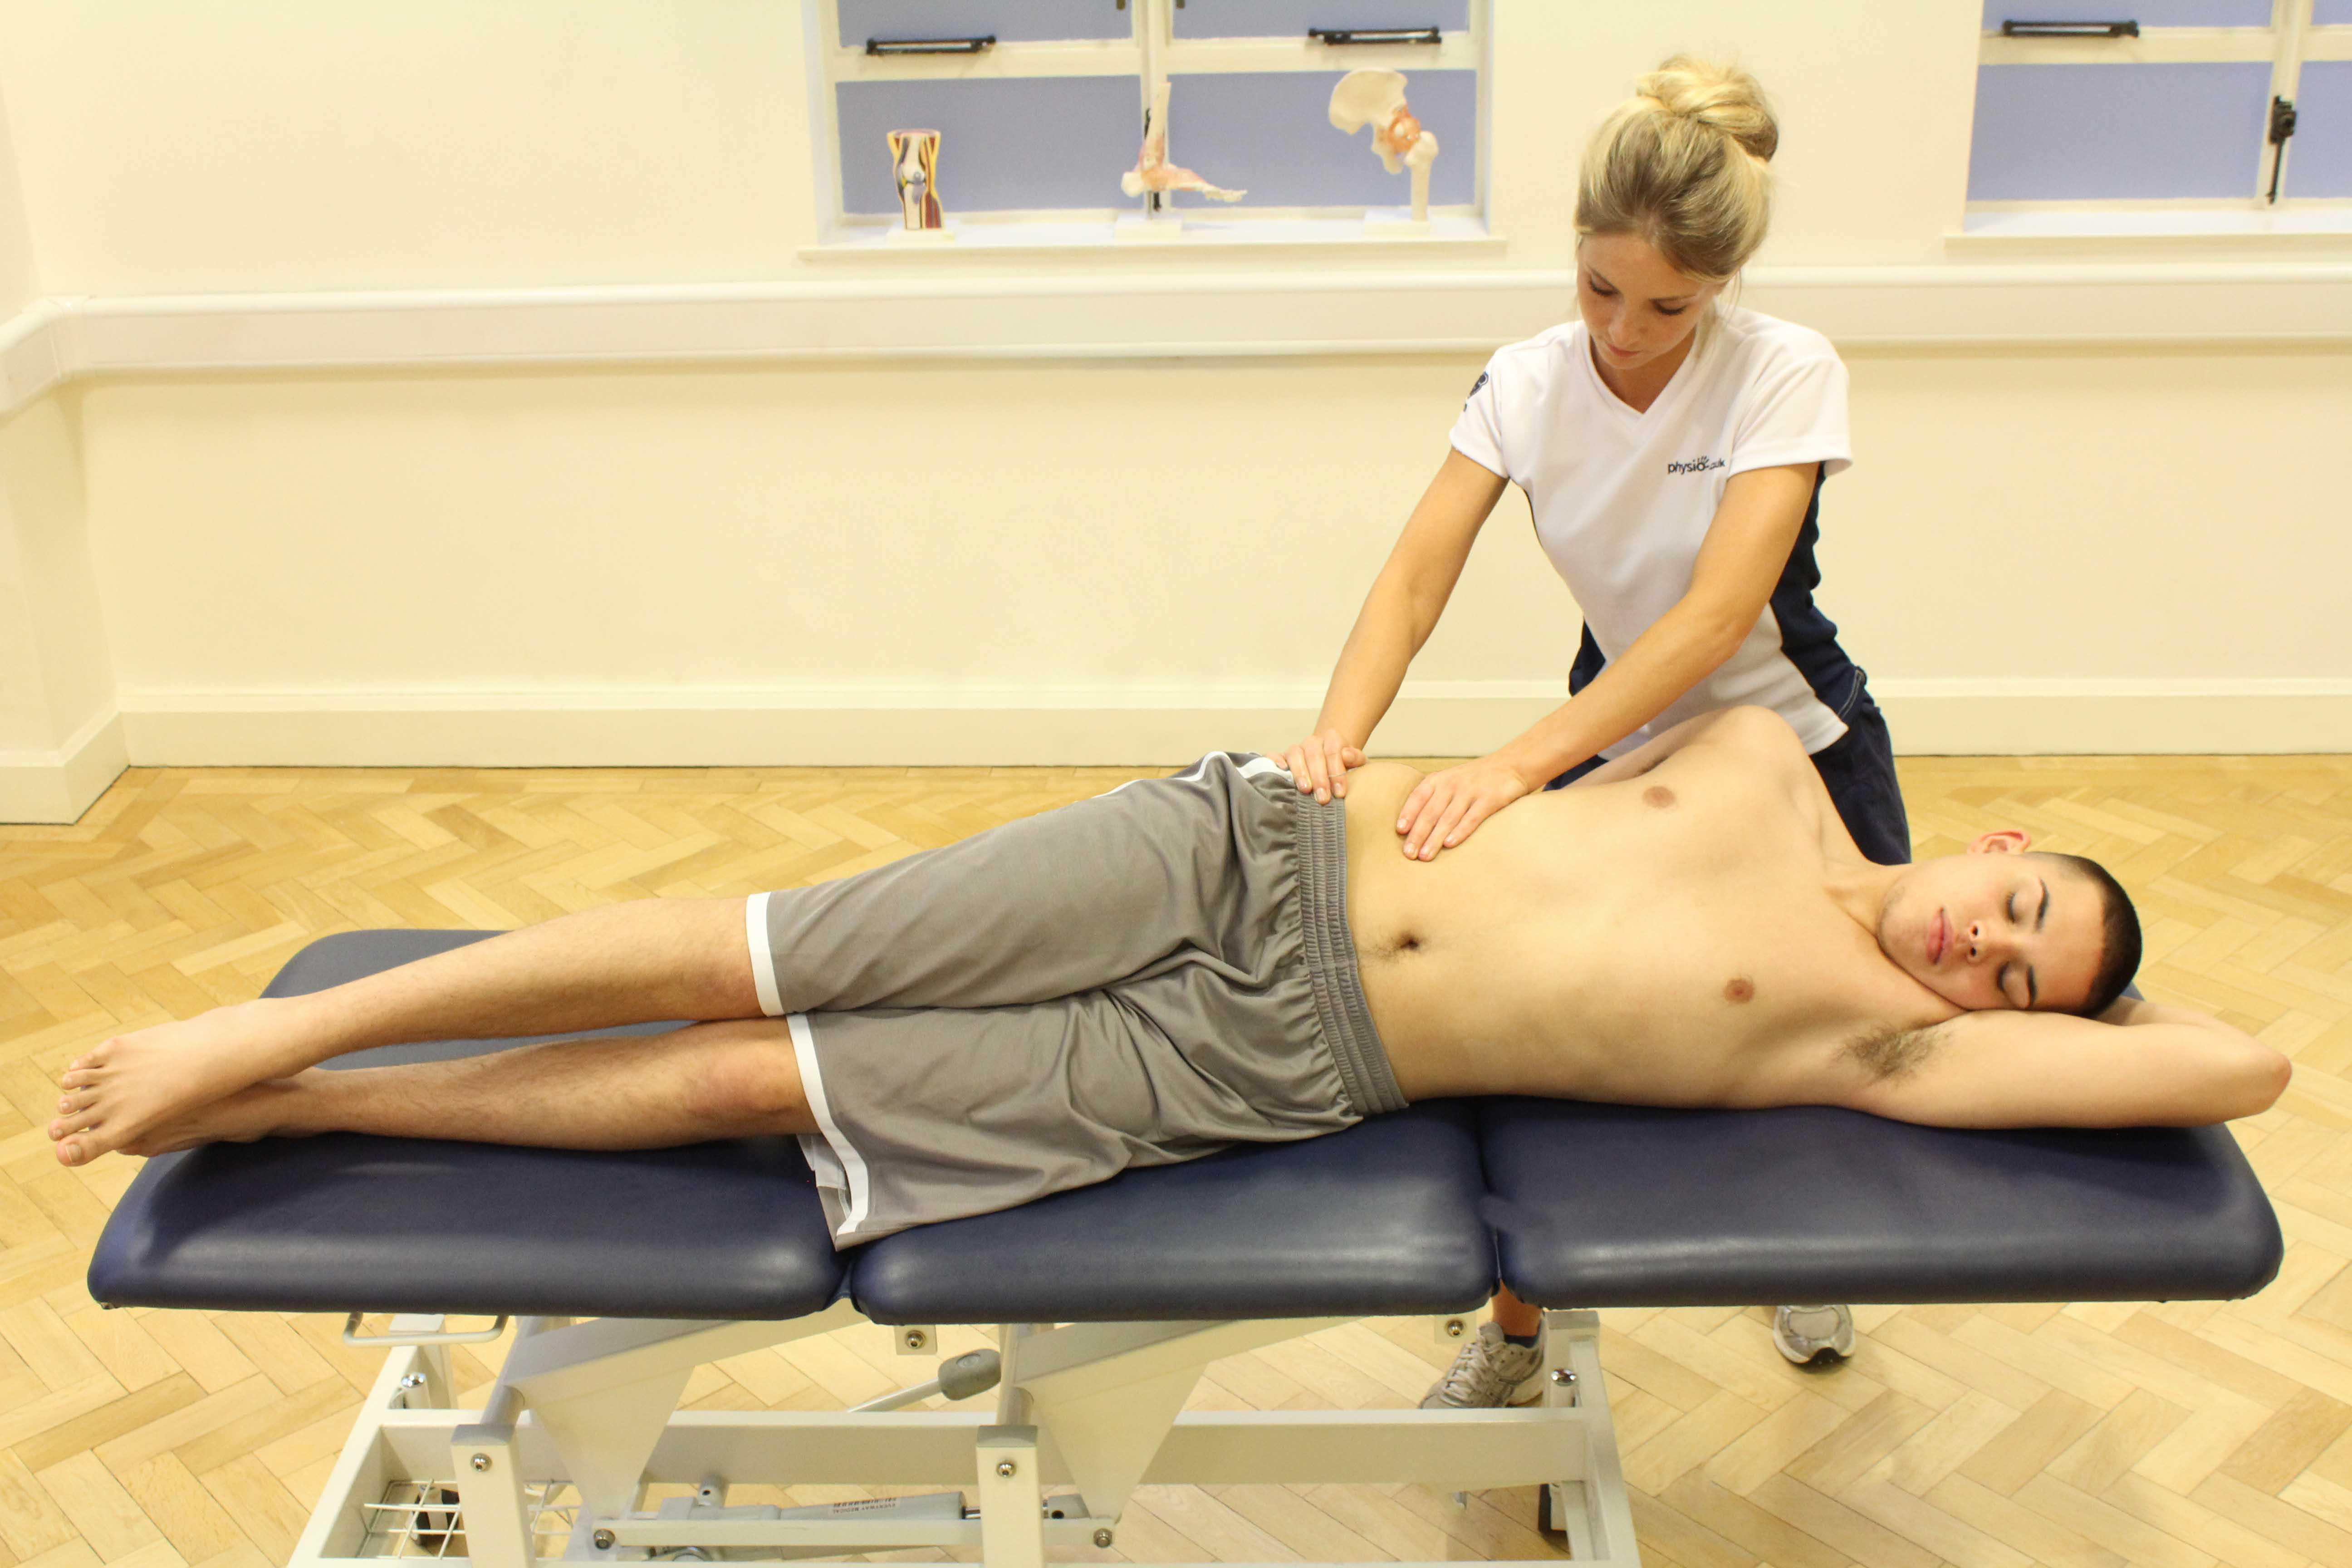 Stability and strengthening exercises conducted on a wobble board with the assistance of a specialist physiotherapist